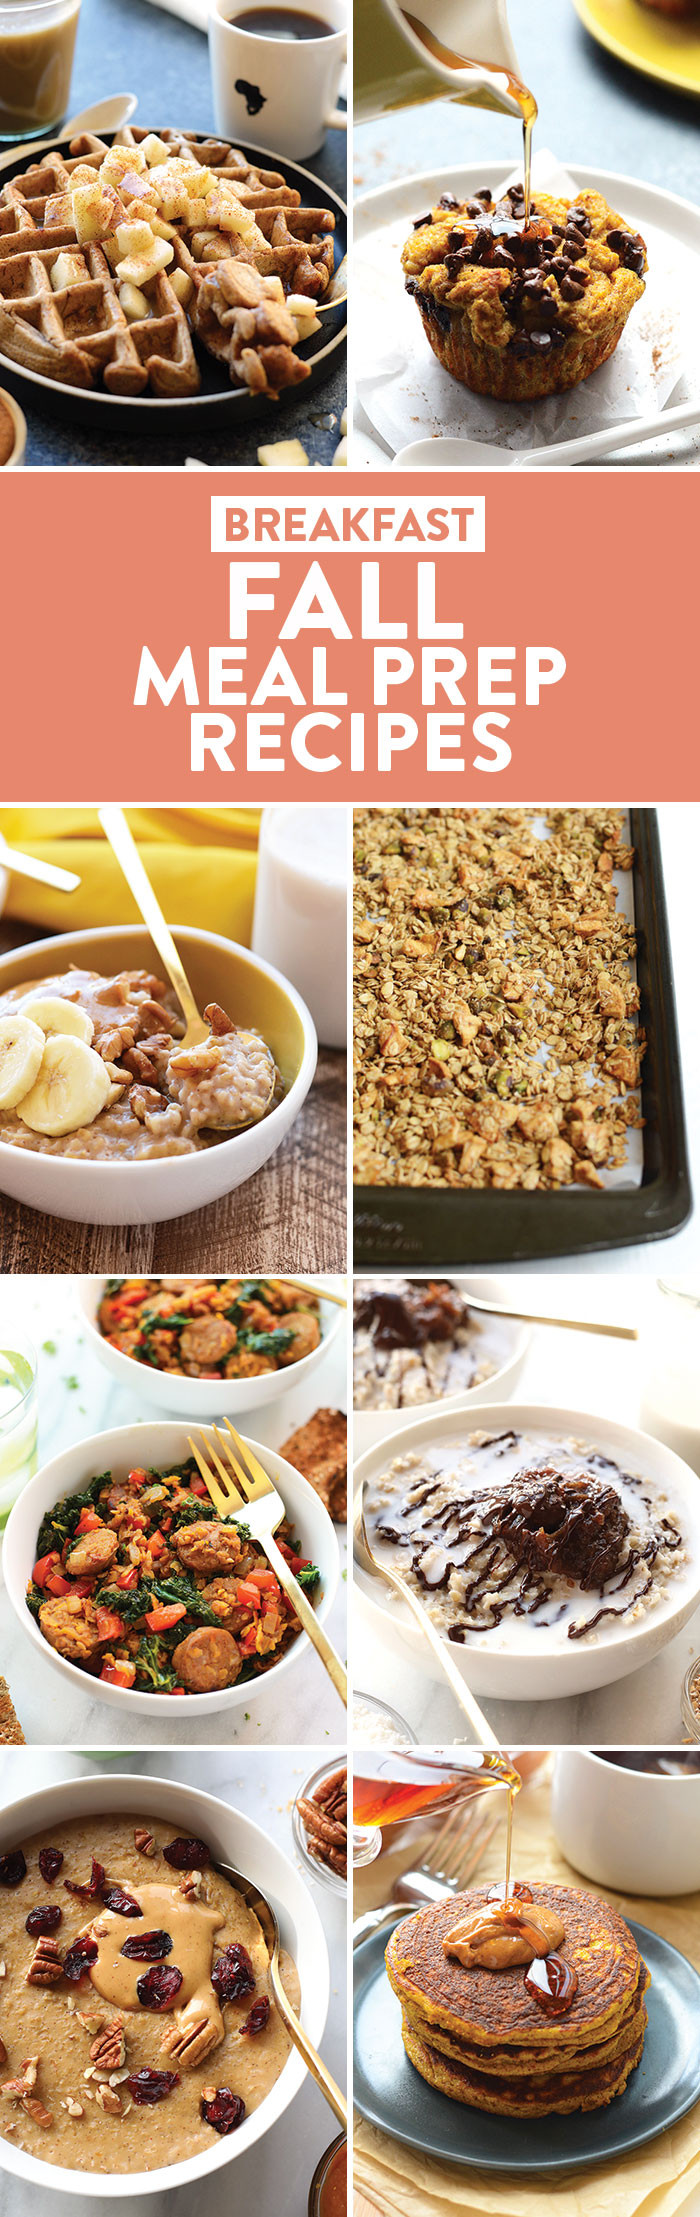 Healthy Fall Breakfast Recipes  50 Healthy Meal Prep Recipes for Fall